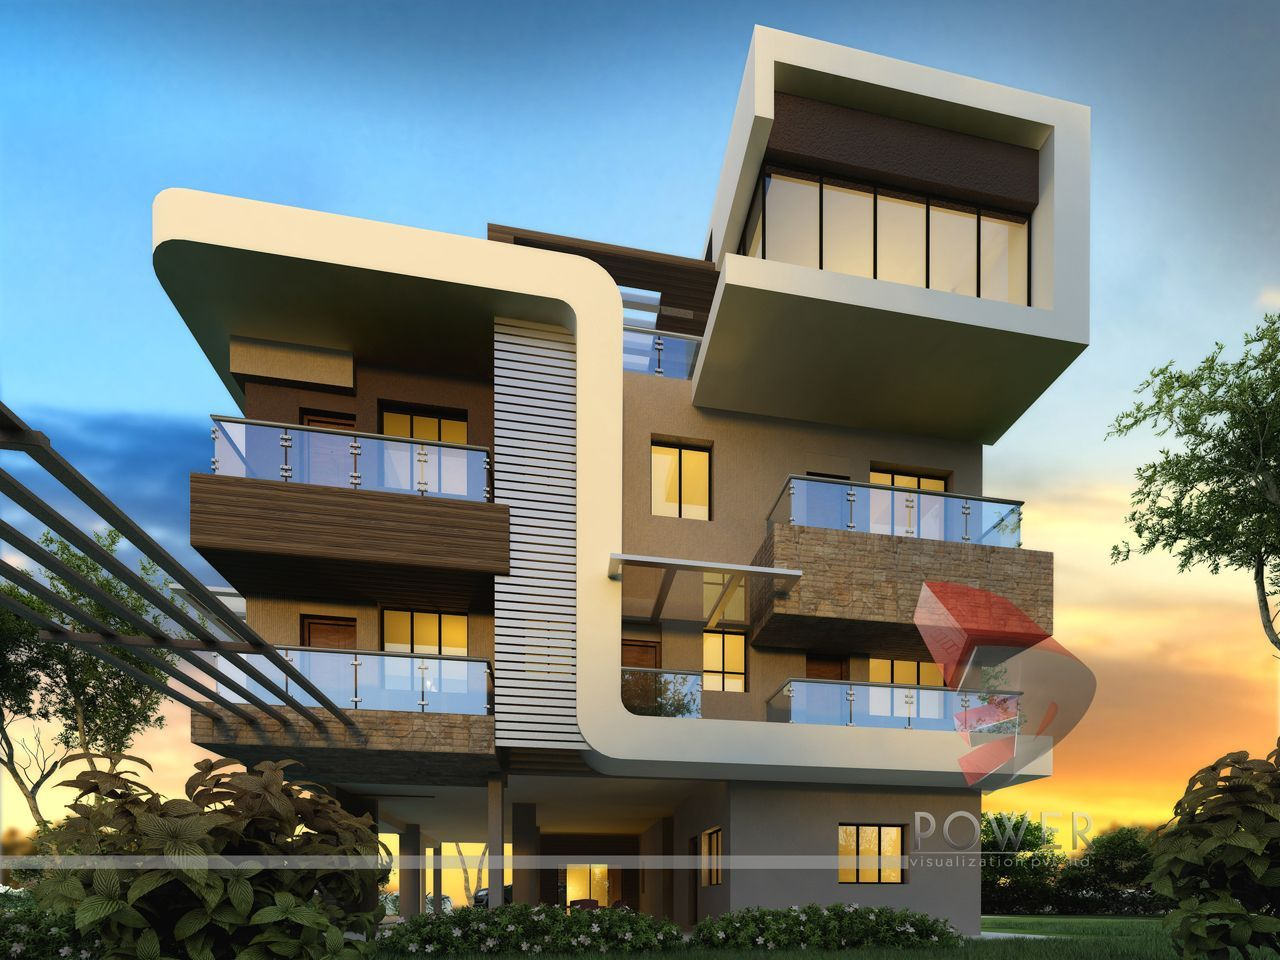 Modern house design in india architecture india contemporary